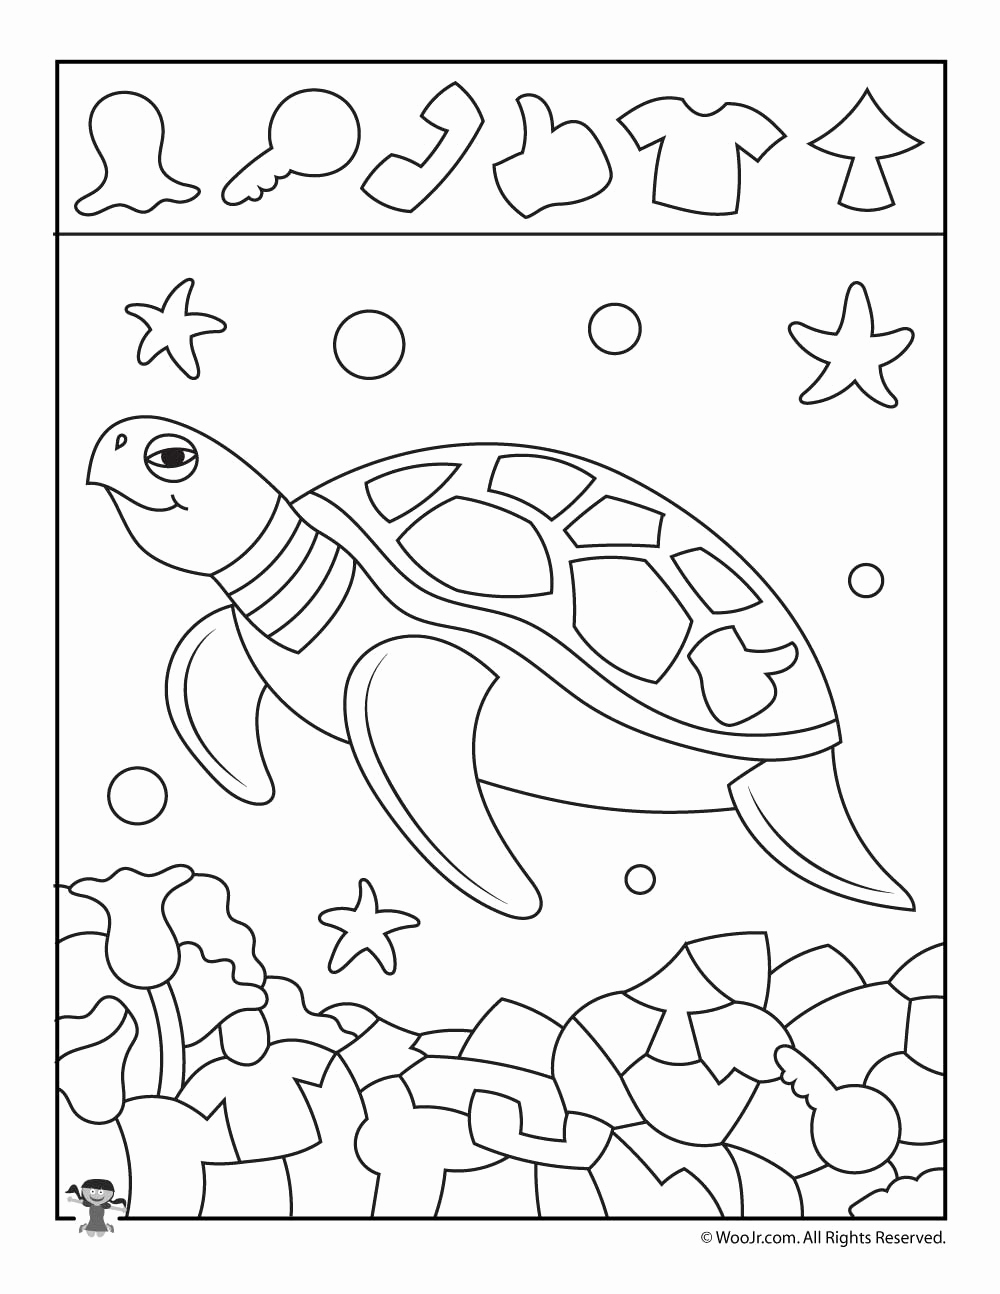 Hidden Animal Pictures Worksheets Inspirational Sea Turtle Find the Item Page